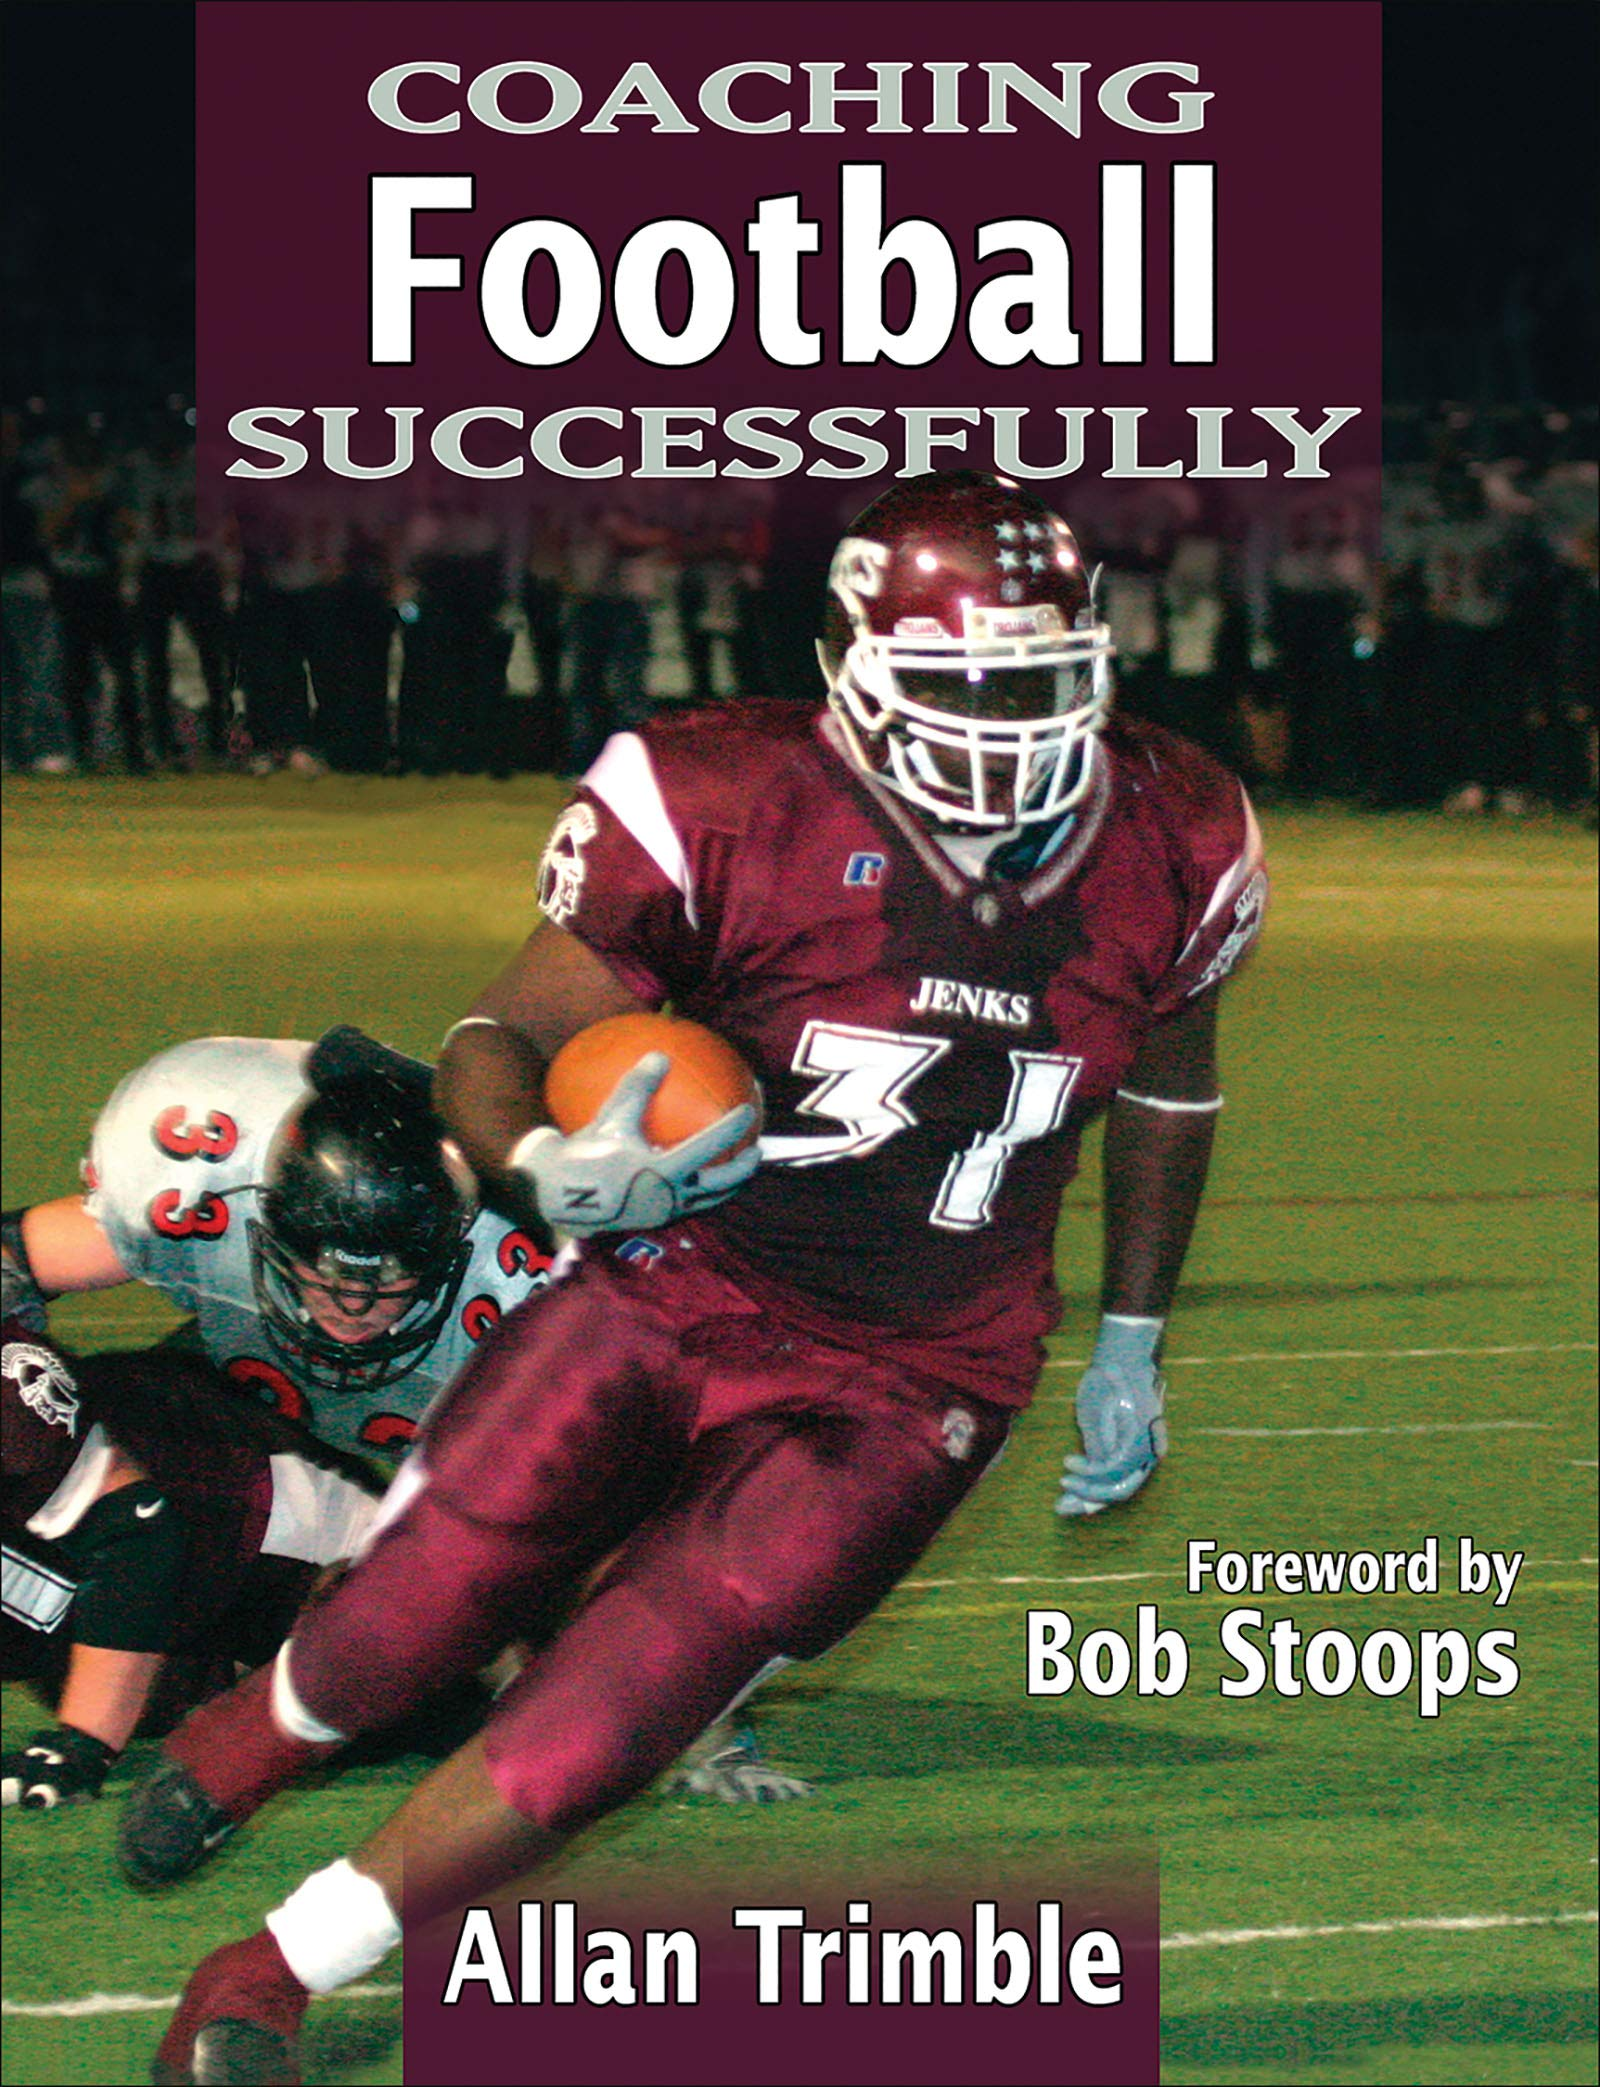 Coaching Football Successfully (Coaching Successfully Series)